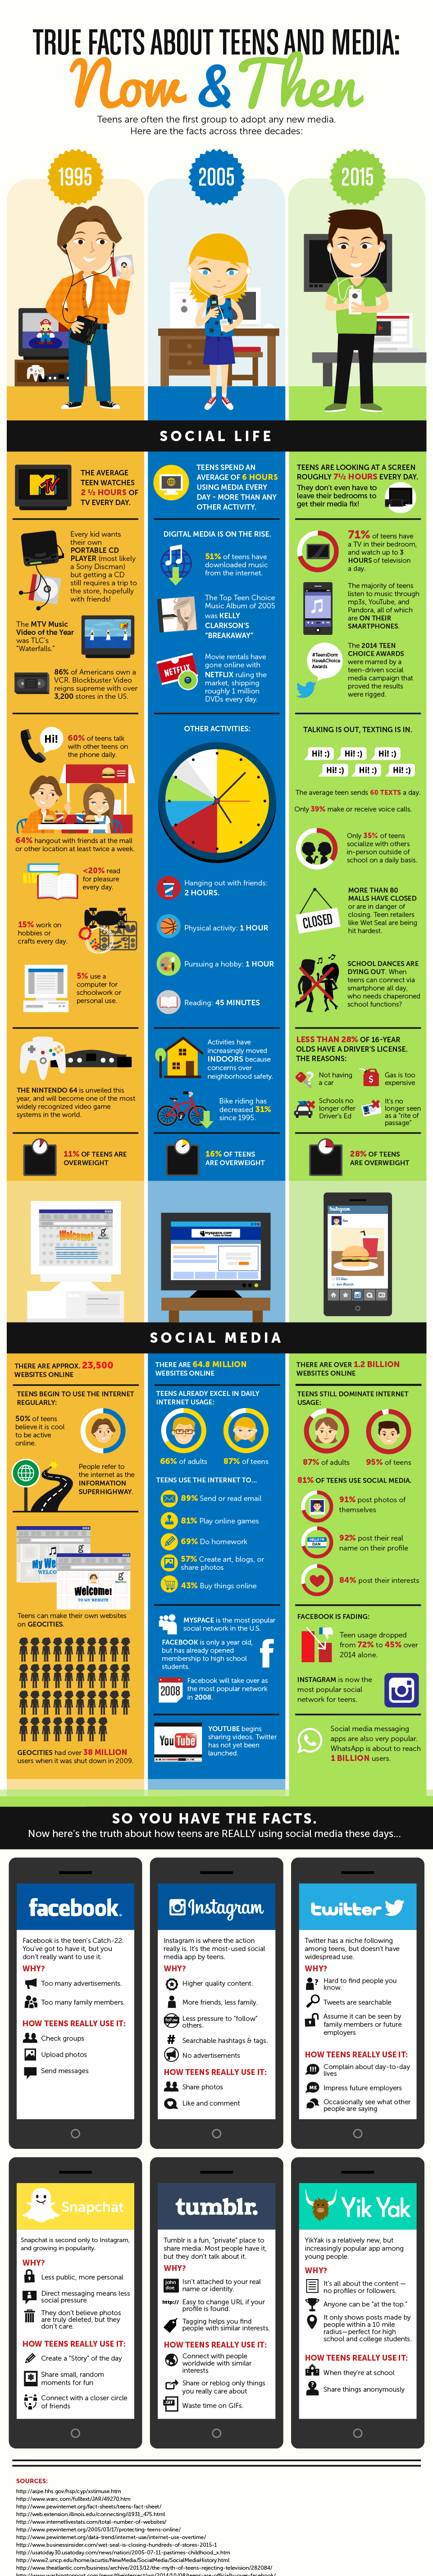 Teens and Media Over the Years Infographic